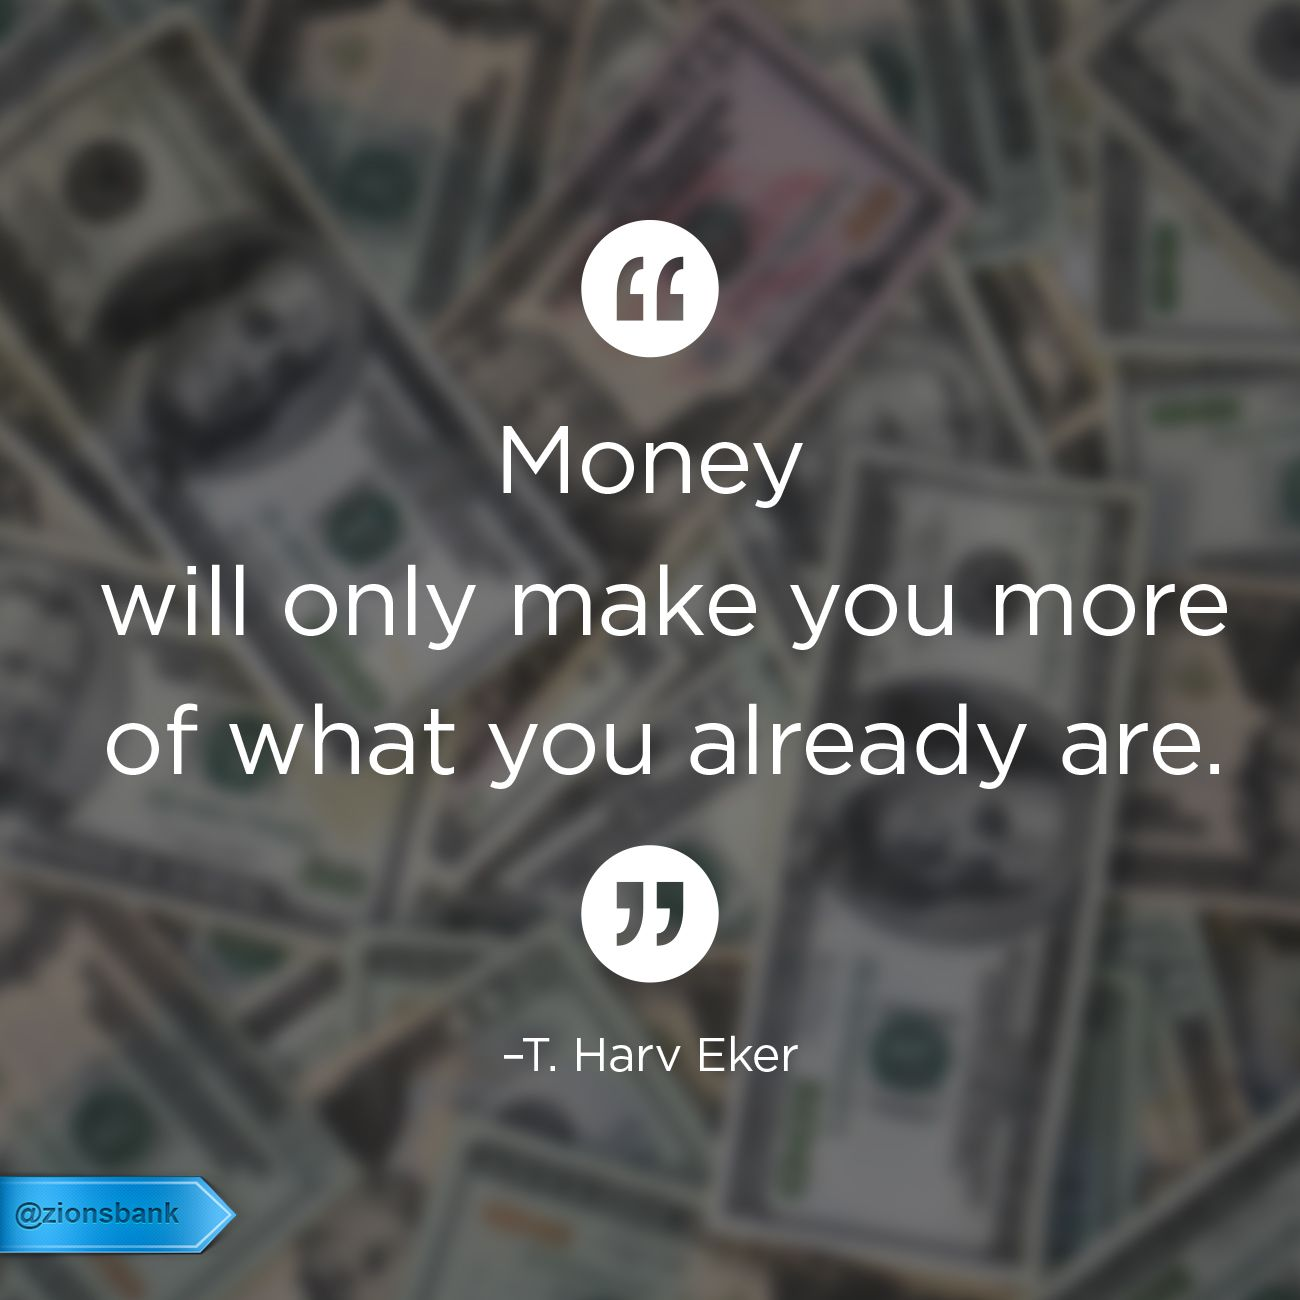 Money Will Only Make You More Of What You Already Are T Harv Eker Quotes Money Money Quotes Wise Quotes Inspirational Words